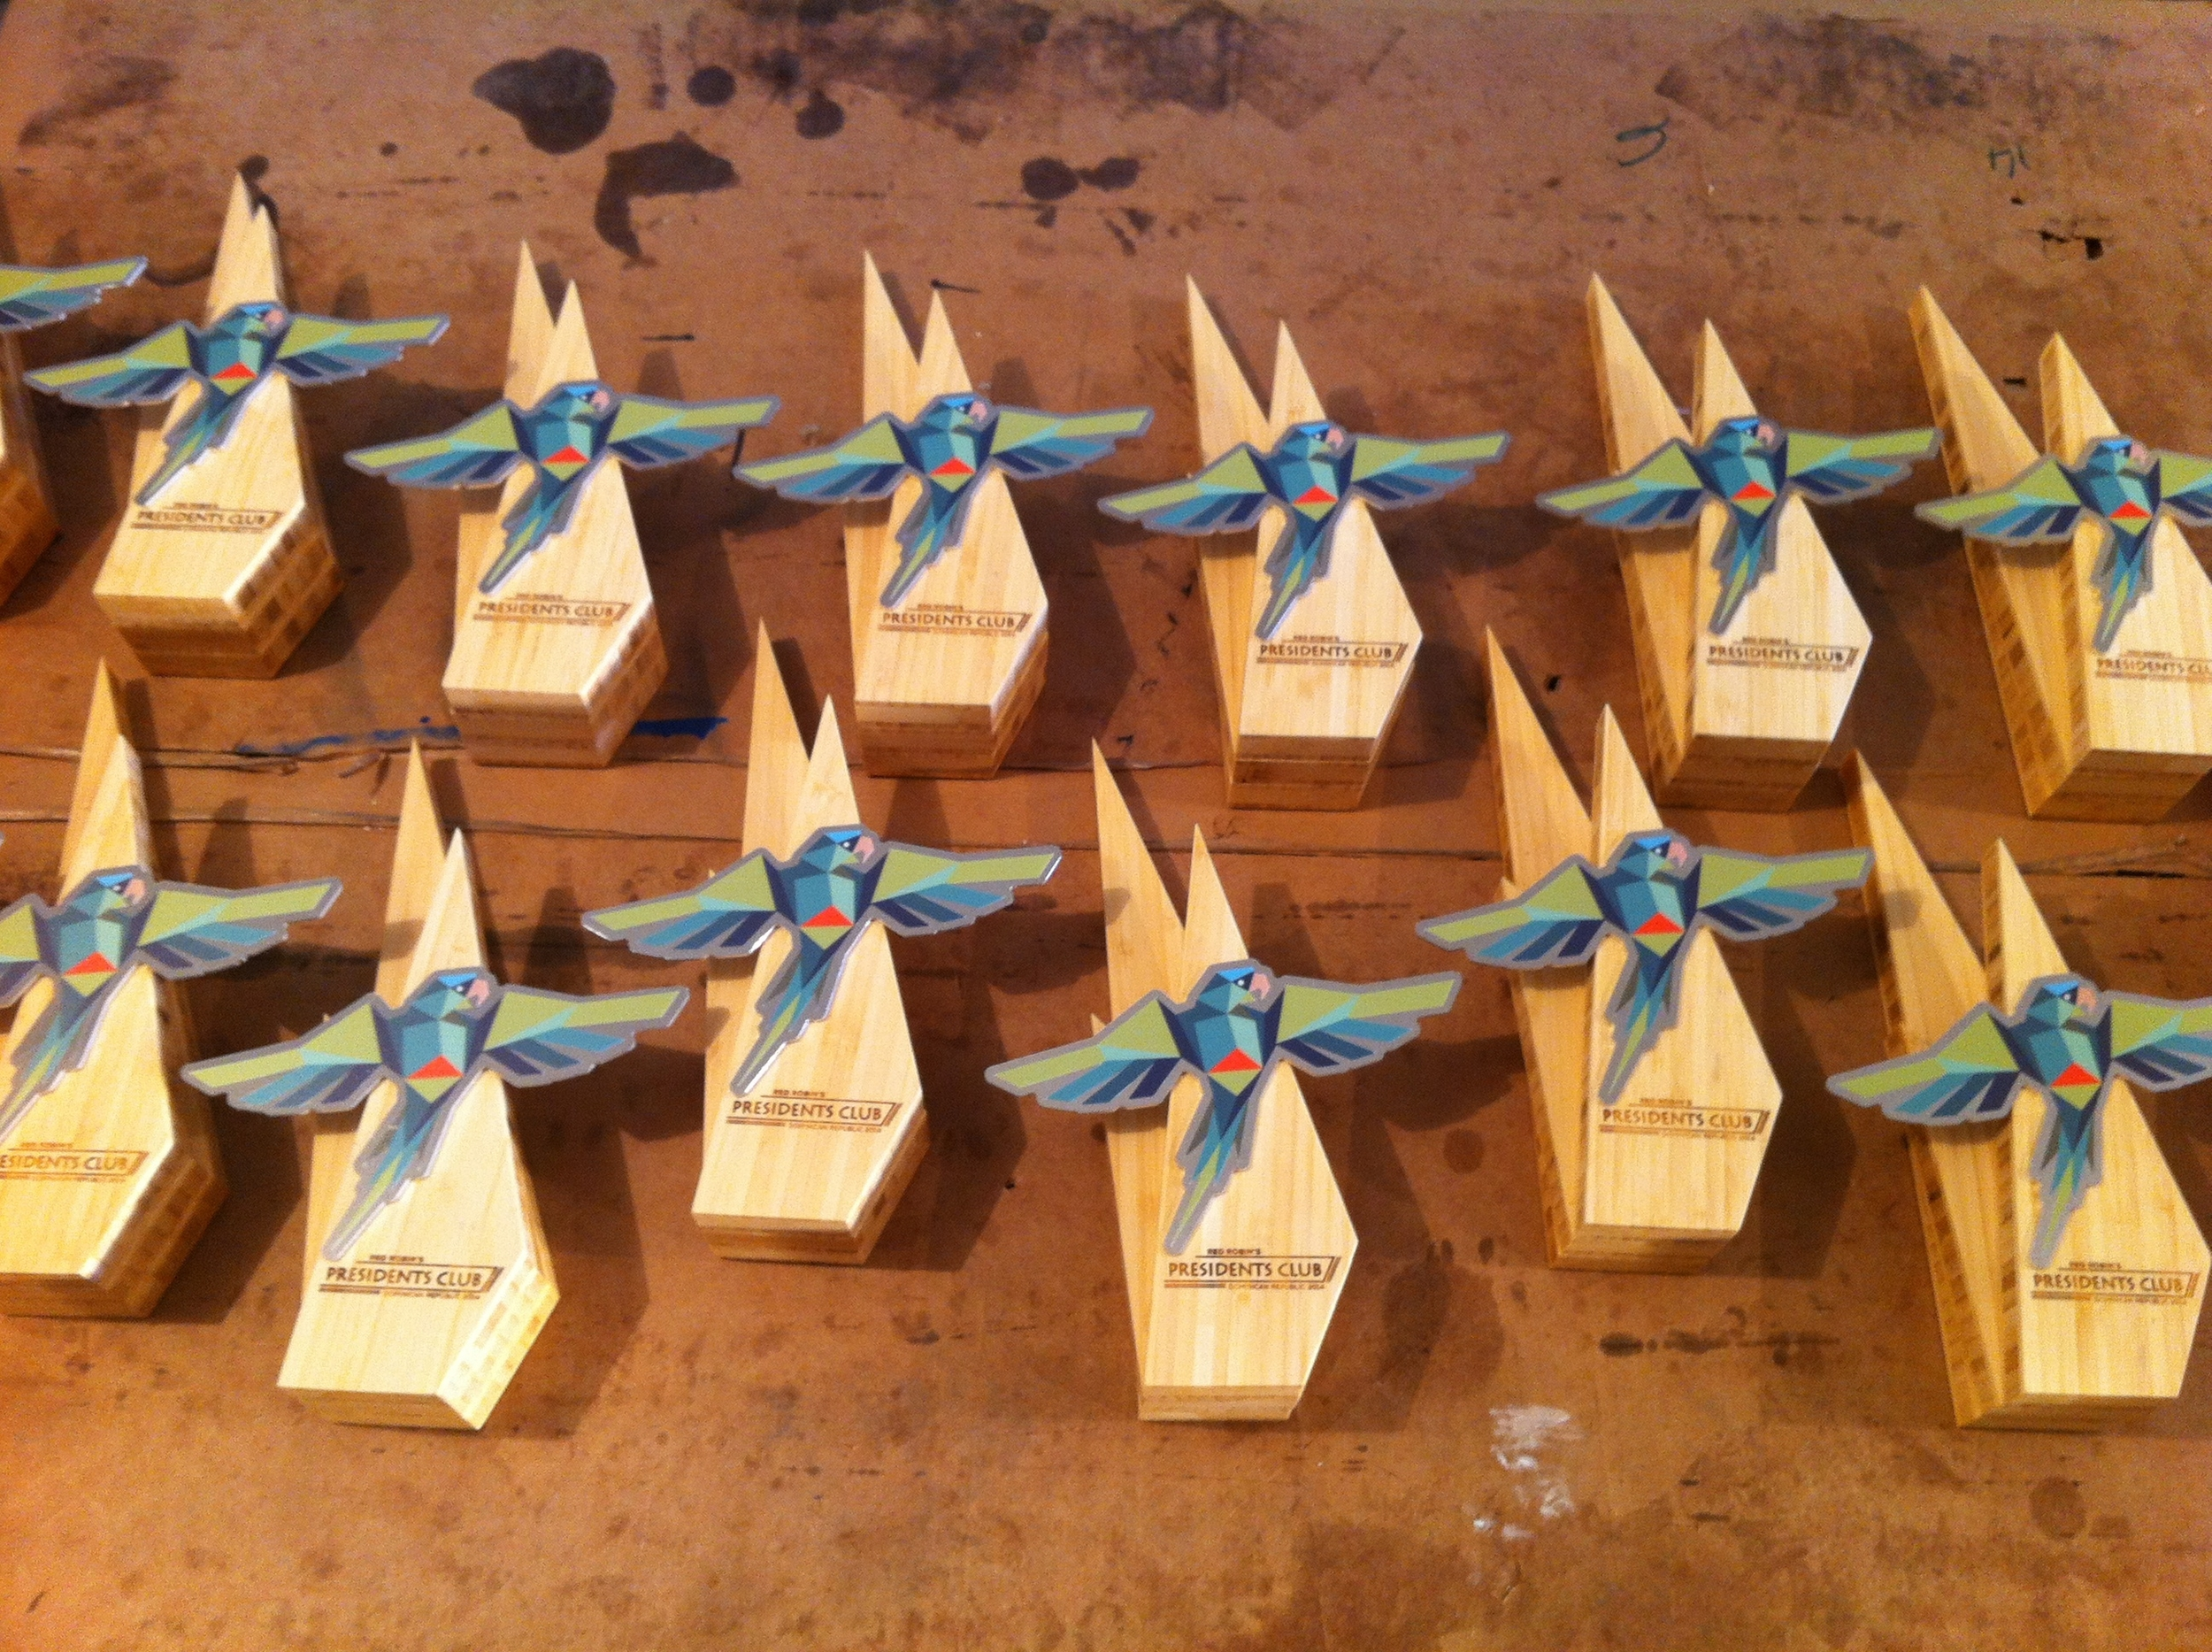 sustainable awards, eco awards, sustainable trophies, eco trophies, environmentally friendly awards and trophies, modern trophy, modern trophies, custom trophies, custom trophy